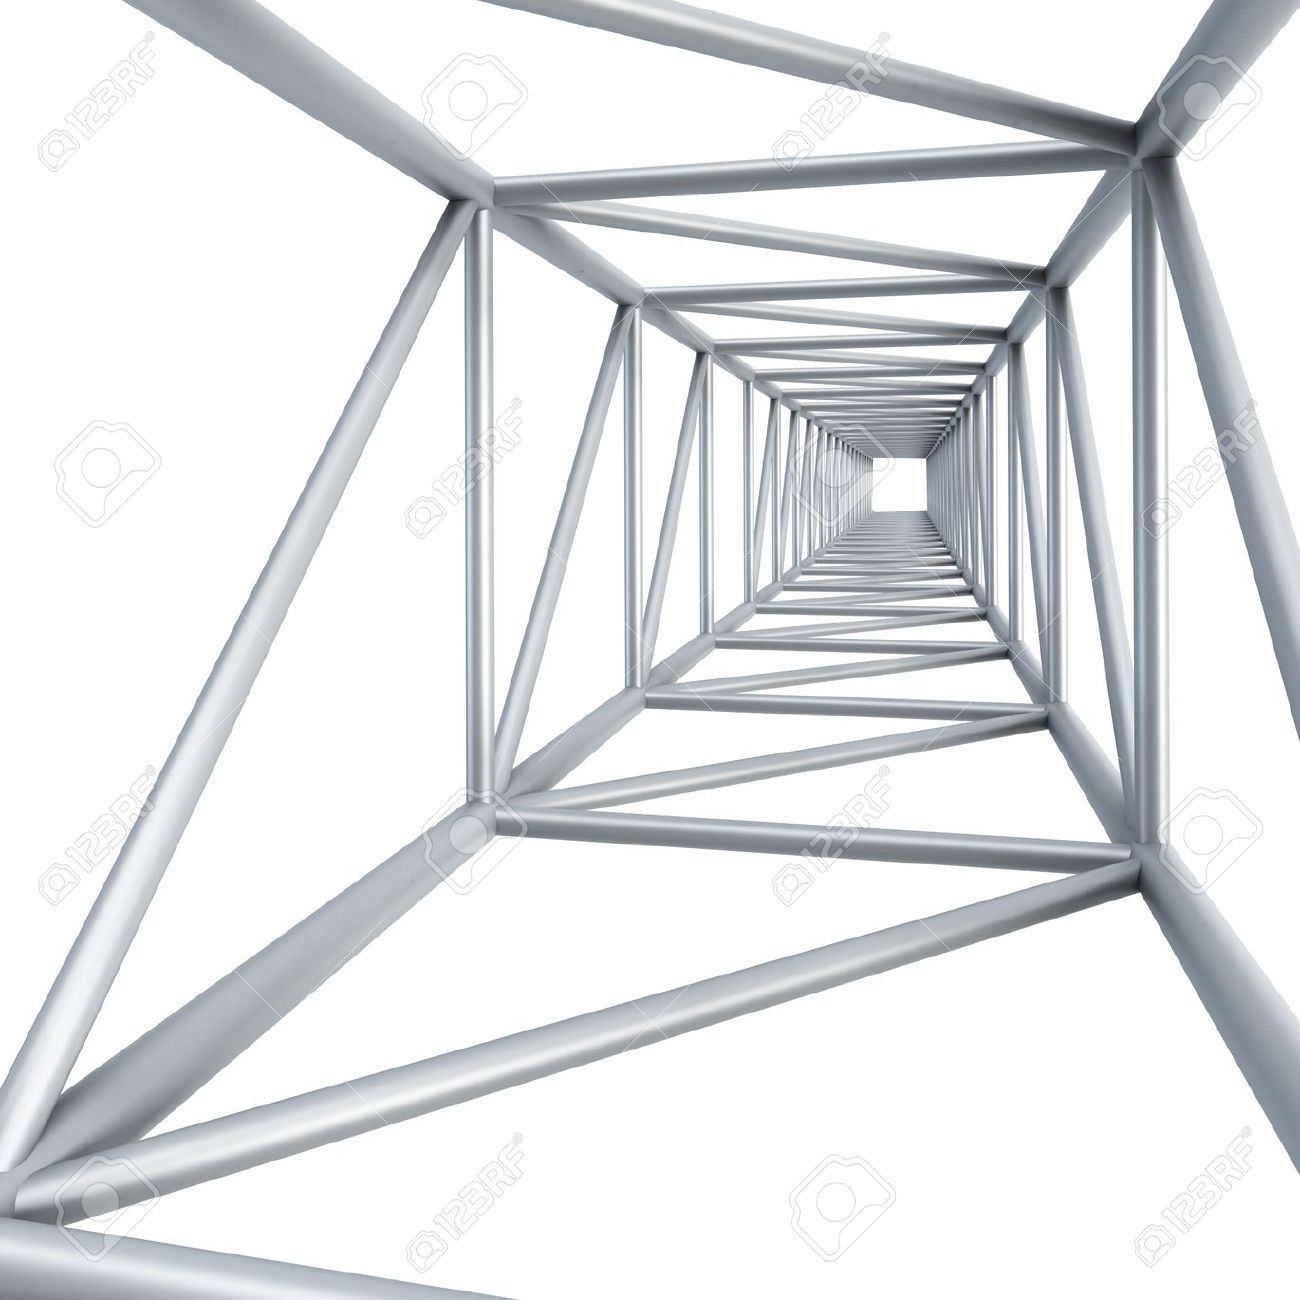 Steel Girder, Isolated 3d Render Stock Photo, Picture And Royalty.